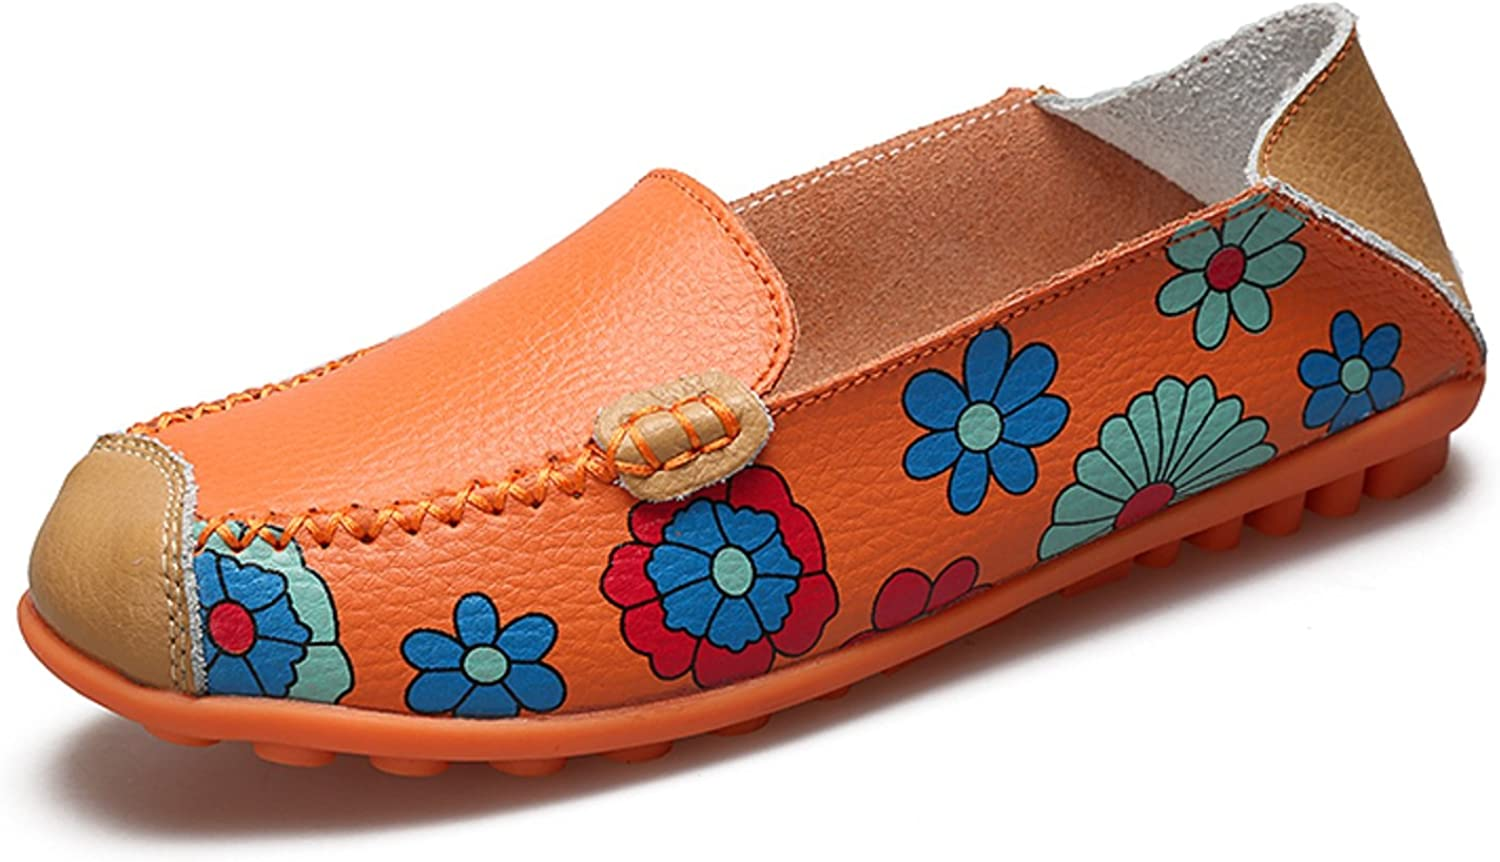 VenusCelia Women's Floral Comfort Walking Flat Loafer